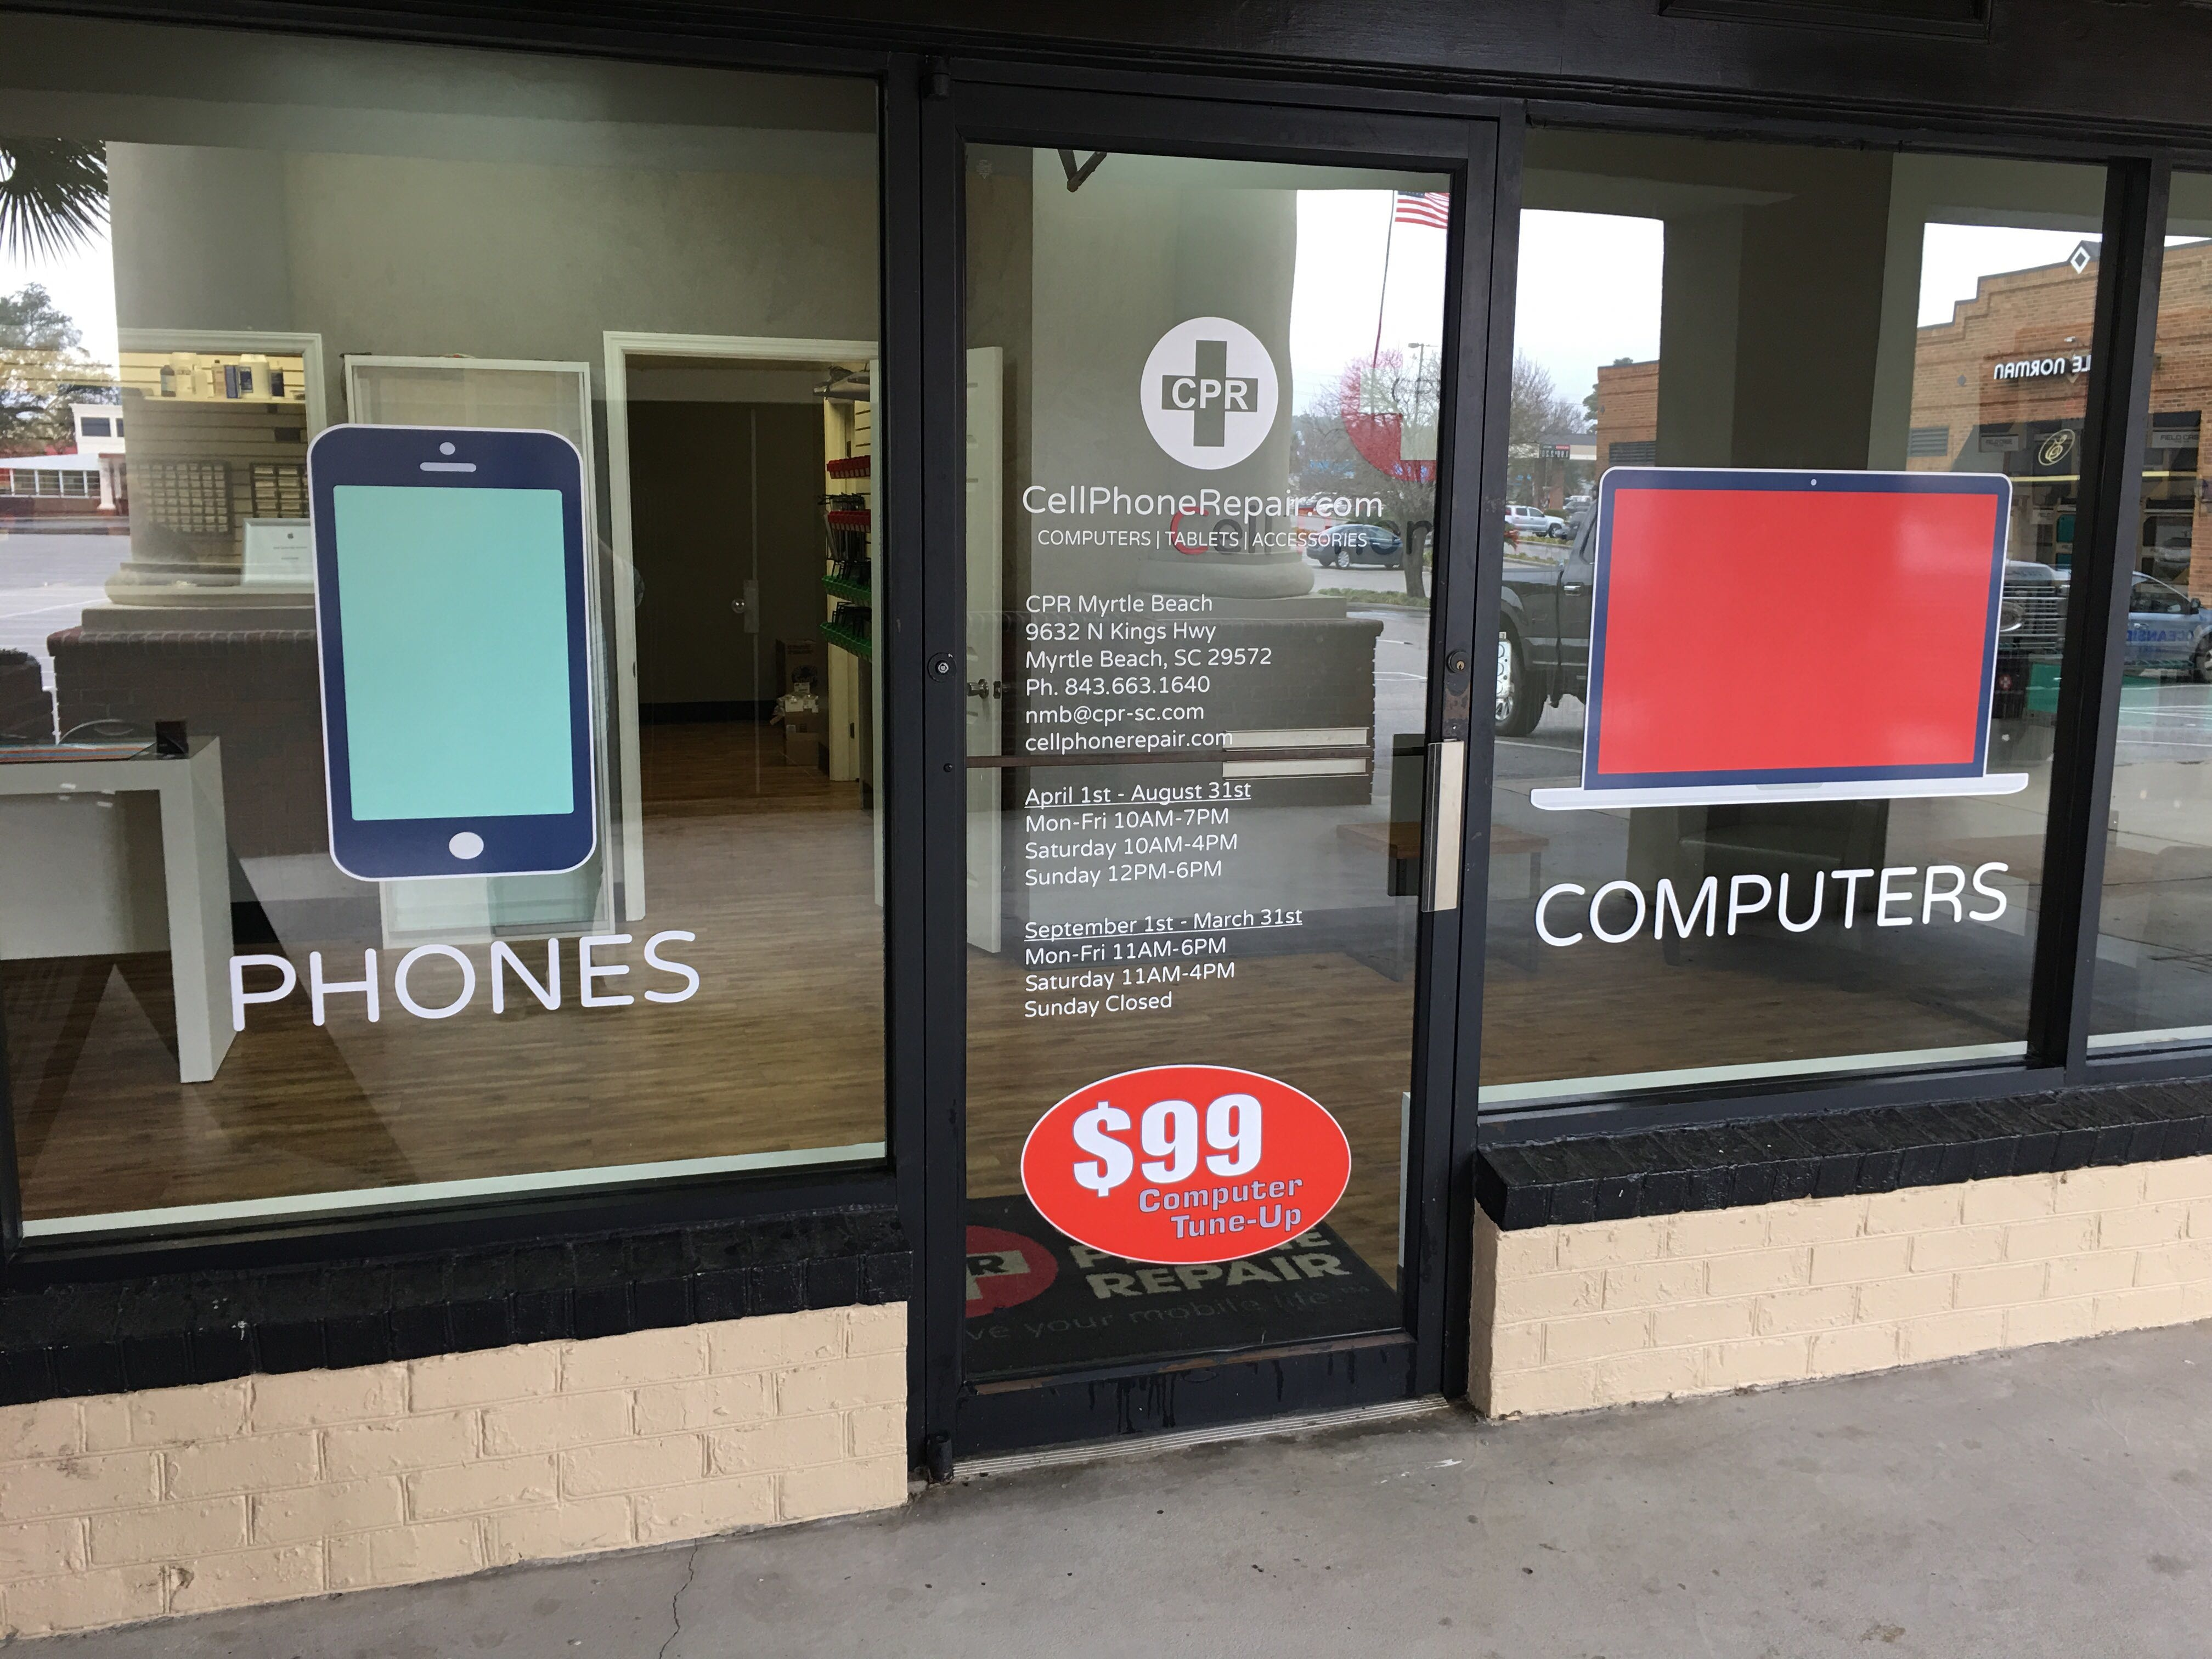 CPR Cell Phone Repair North Myrtle Beach image 4